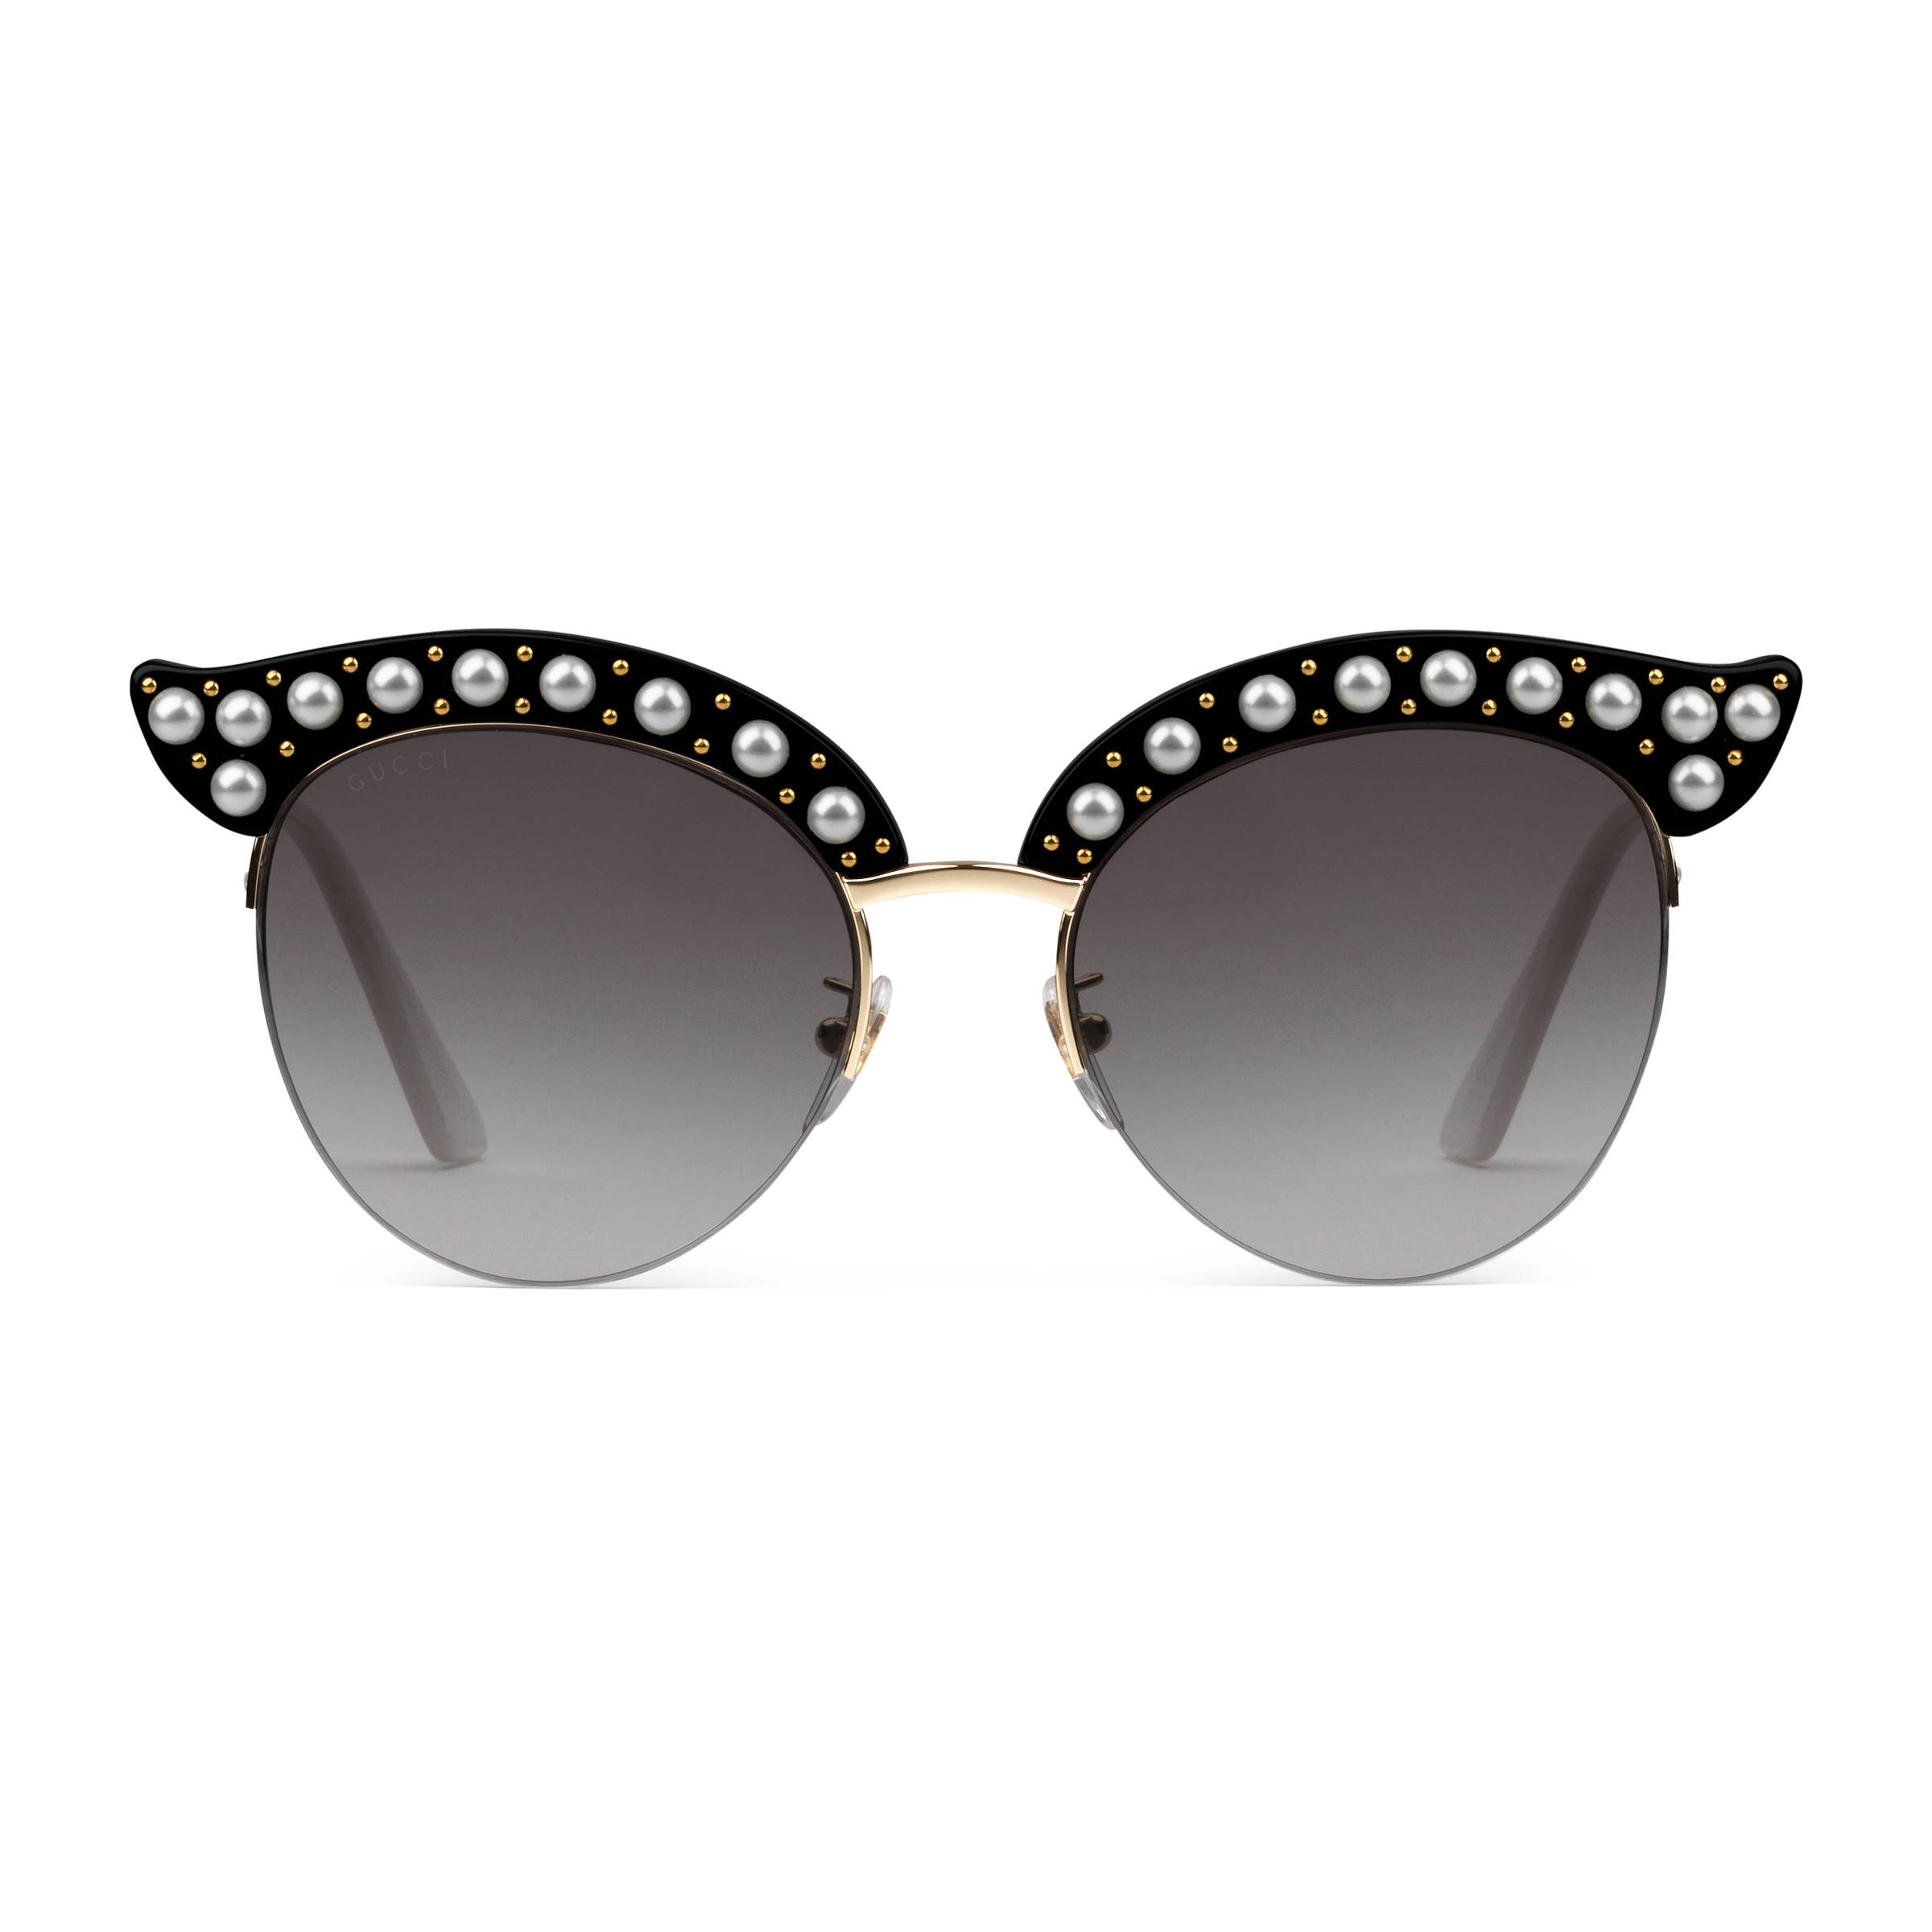 74ca07927298 cat-eye-acetate-sunglasses-with-pearls-gucci-com-photo.jpg 1542184670